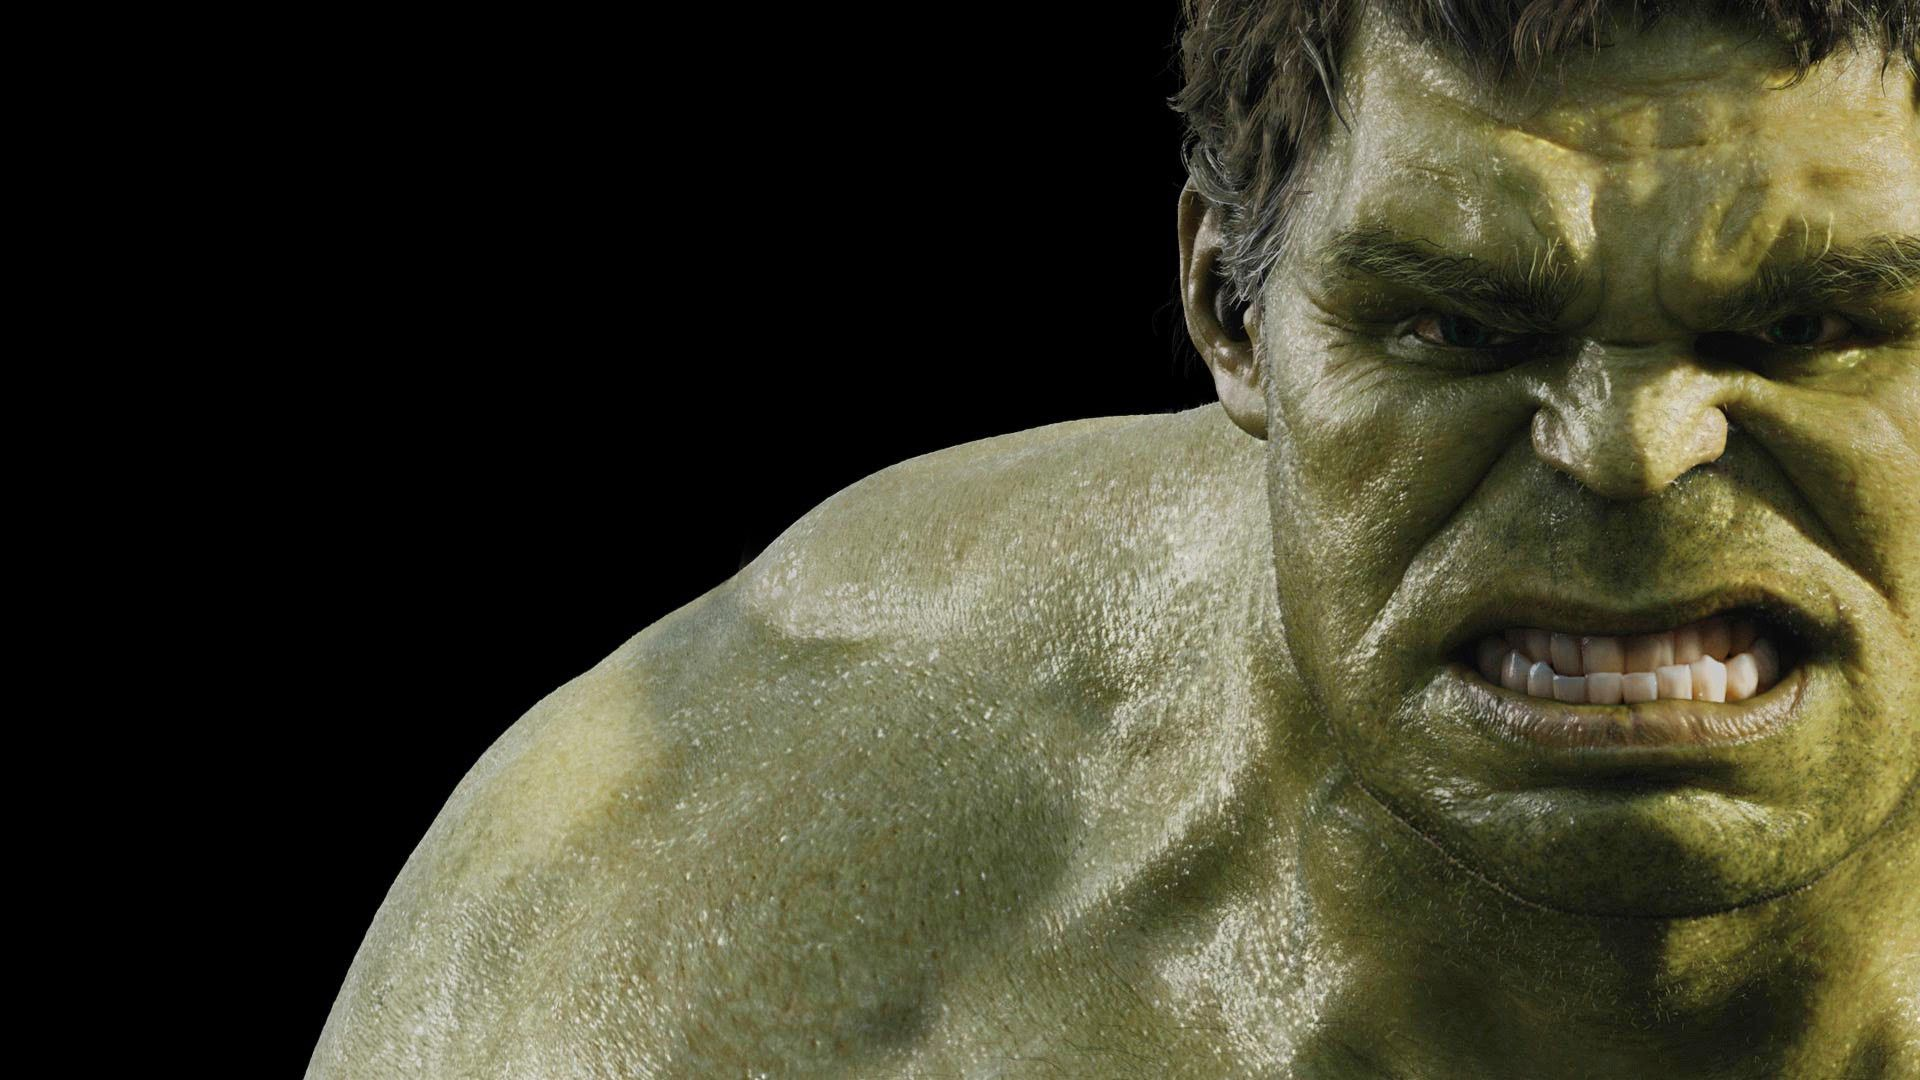 Hulk Hd Wallpapers 1024x768 55 Pictures 1920x1080